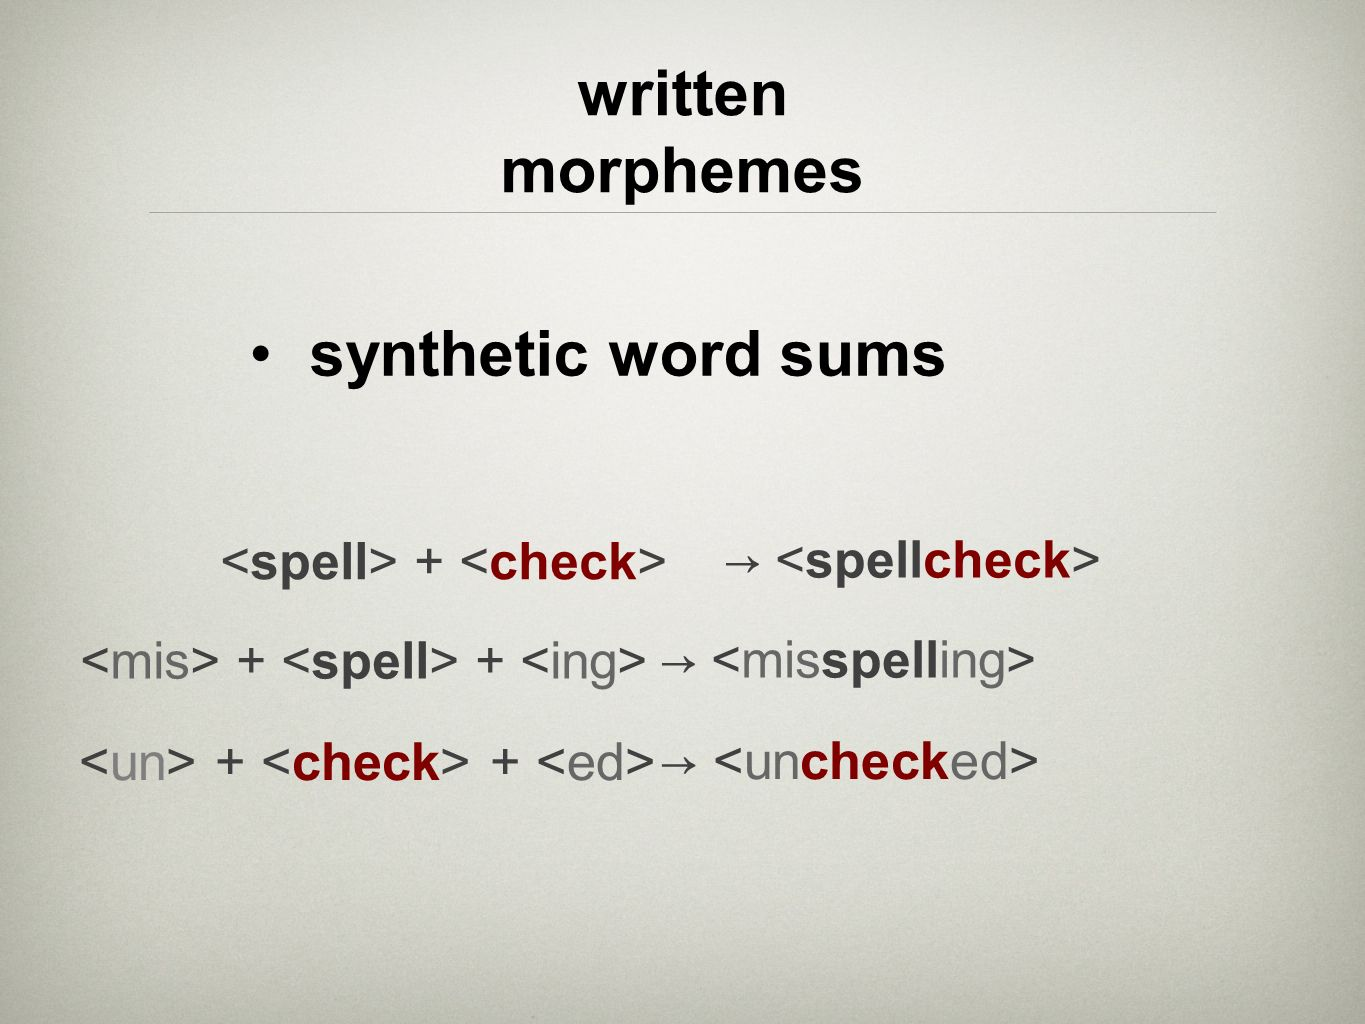 synthetic word sums written morphemes <mis> + <spell> + <ing> <un> + <check> + <ed> <spell> + <check>